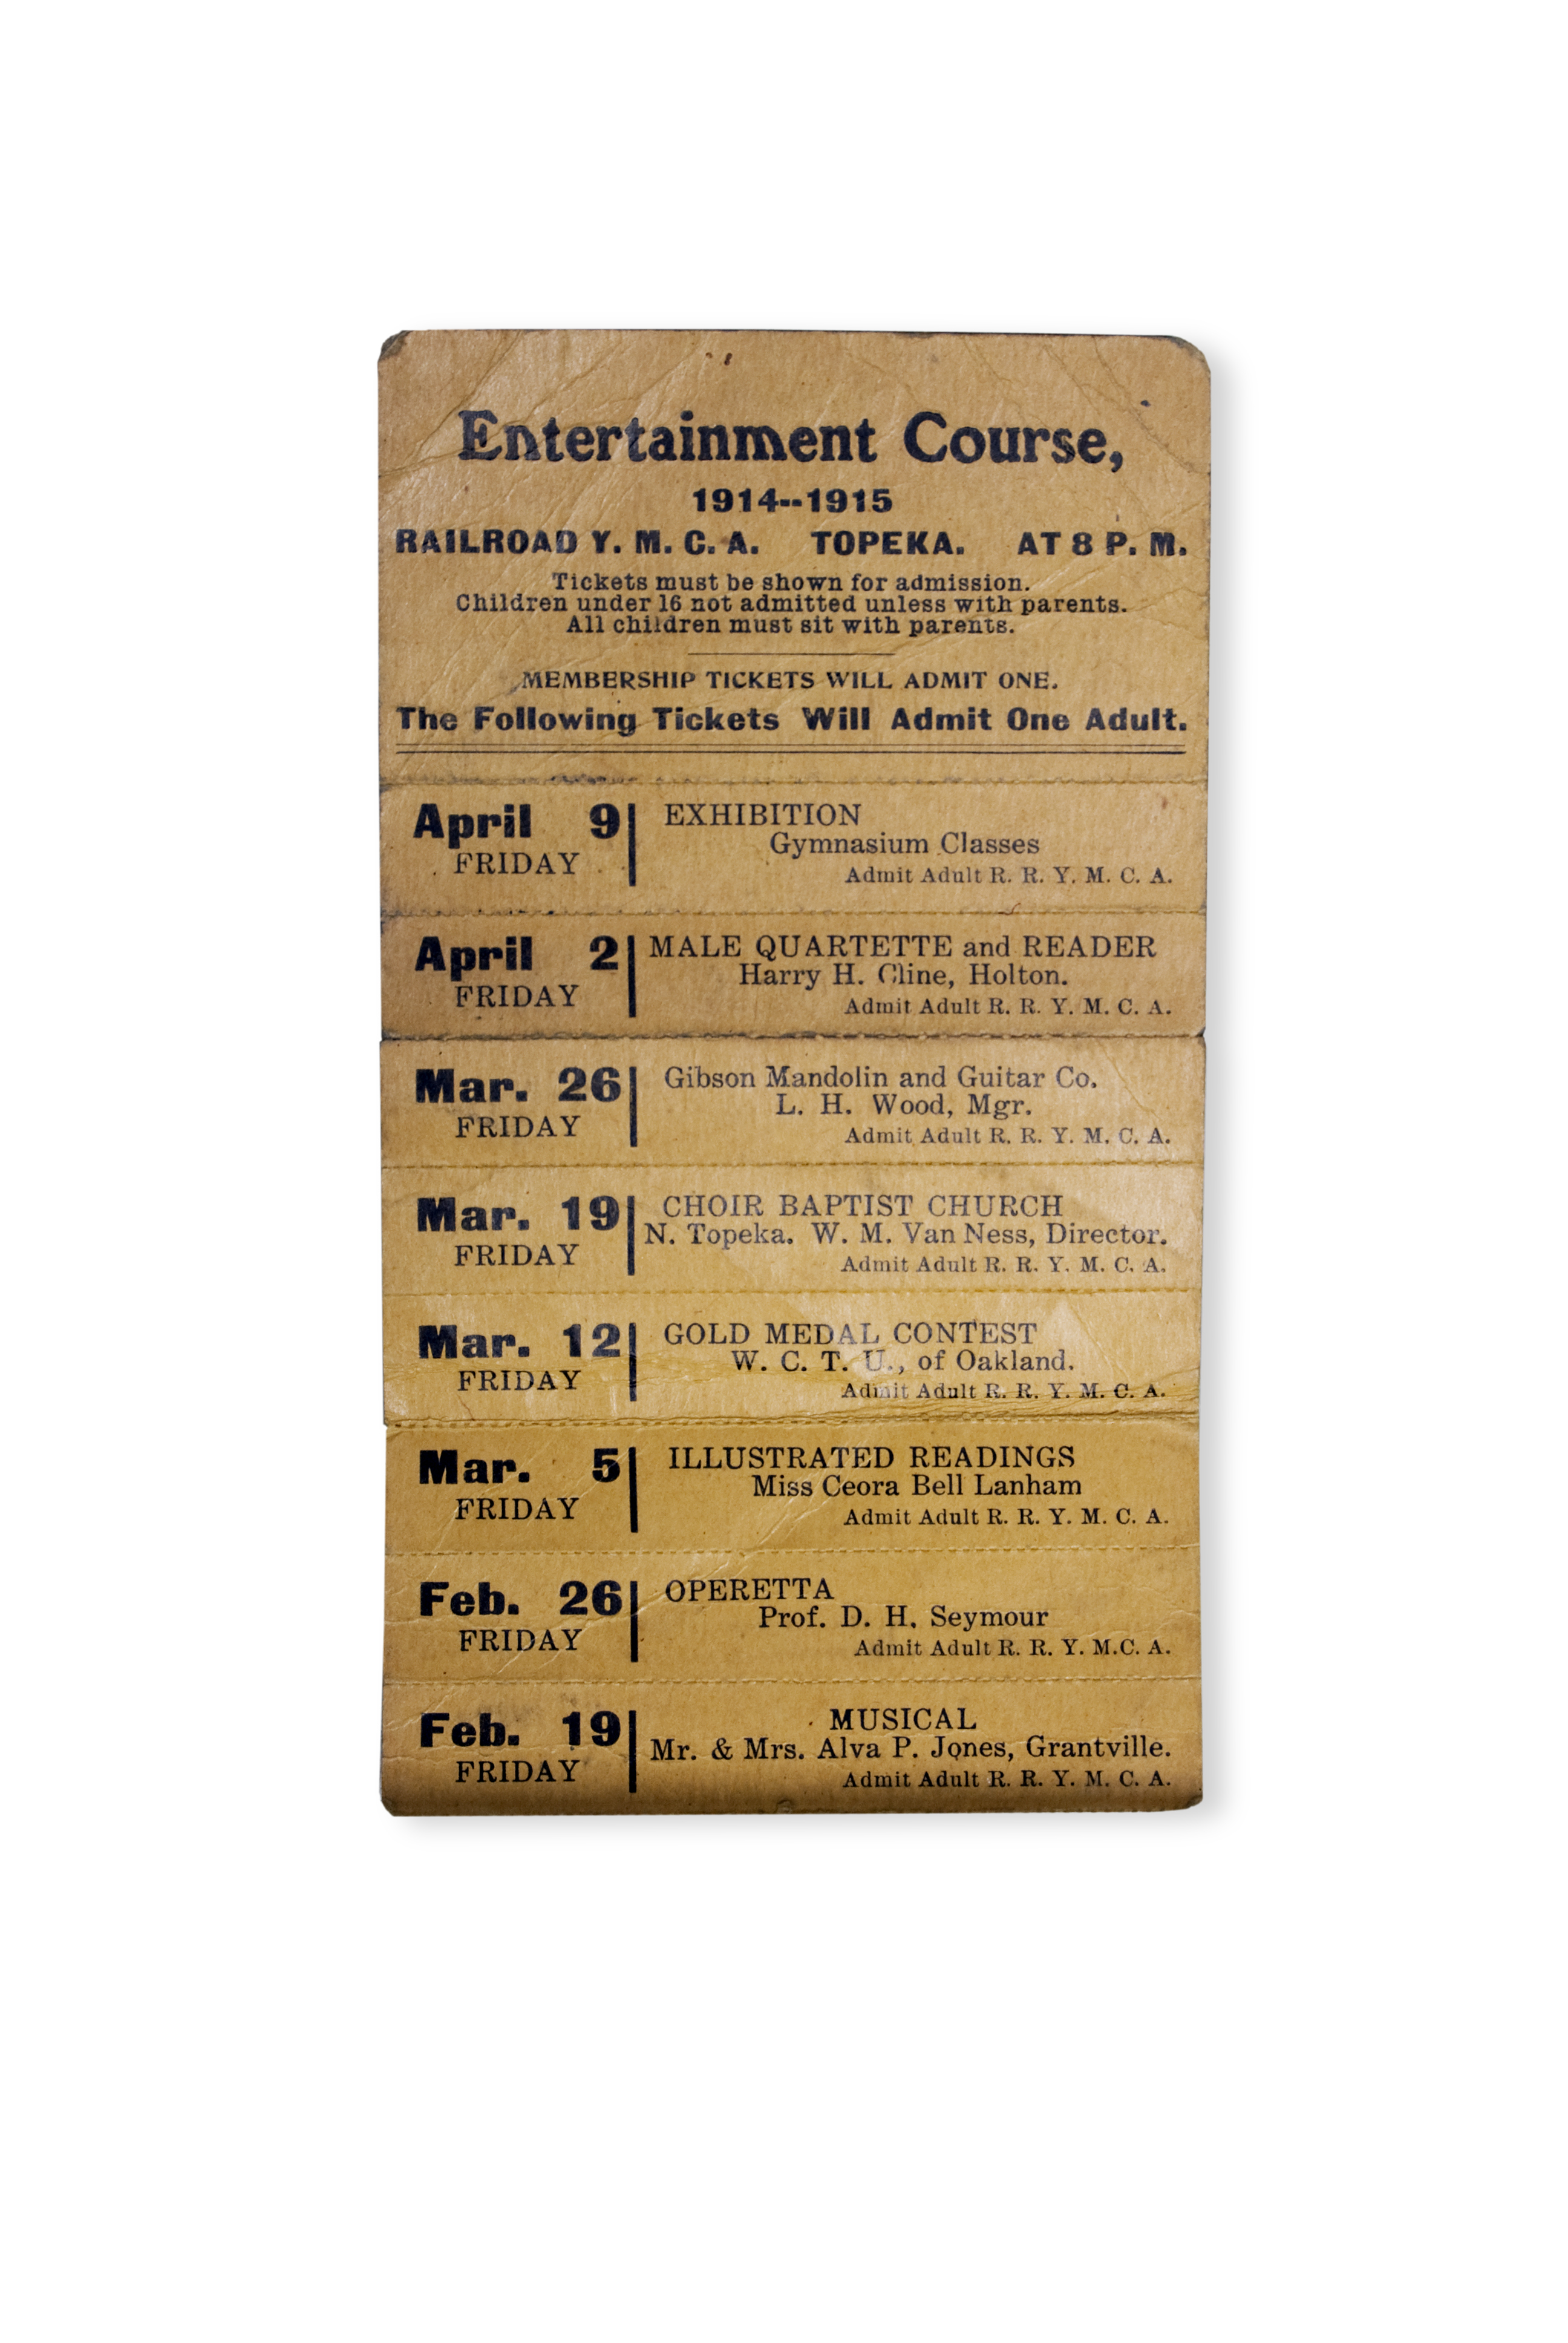 1914-1915 railroad tickets, entertainment course